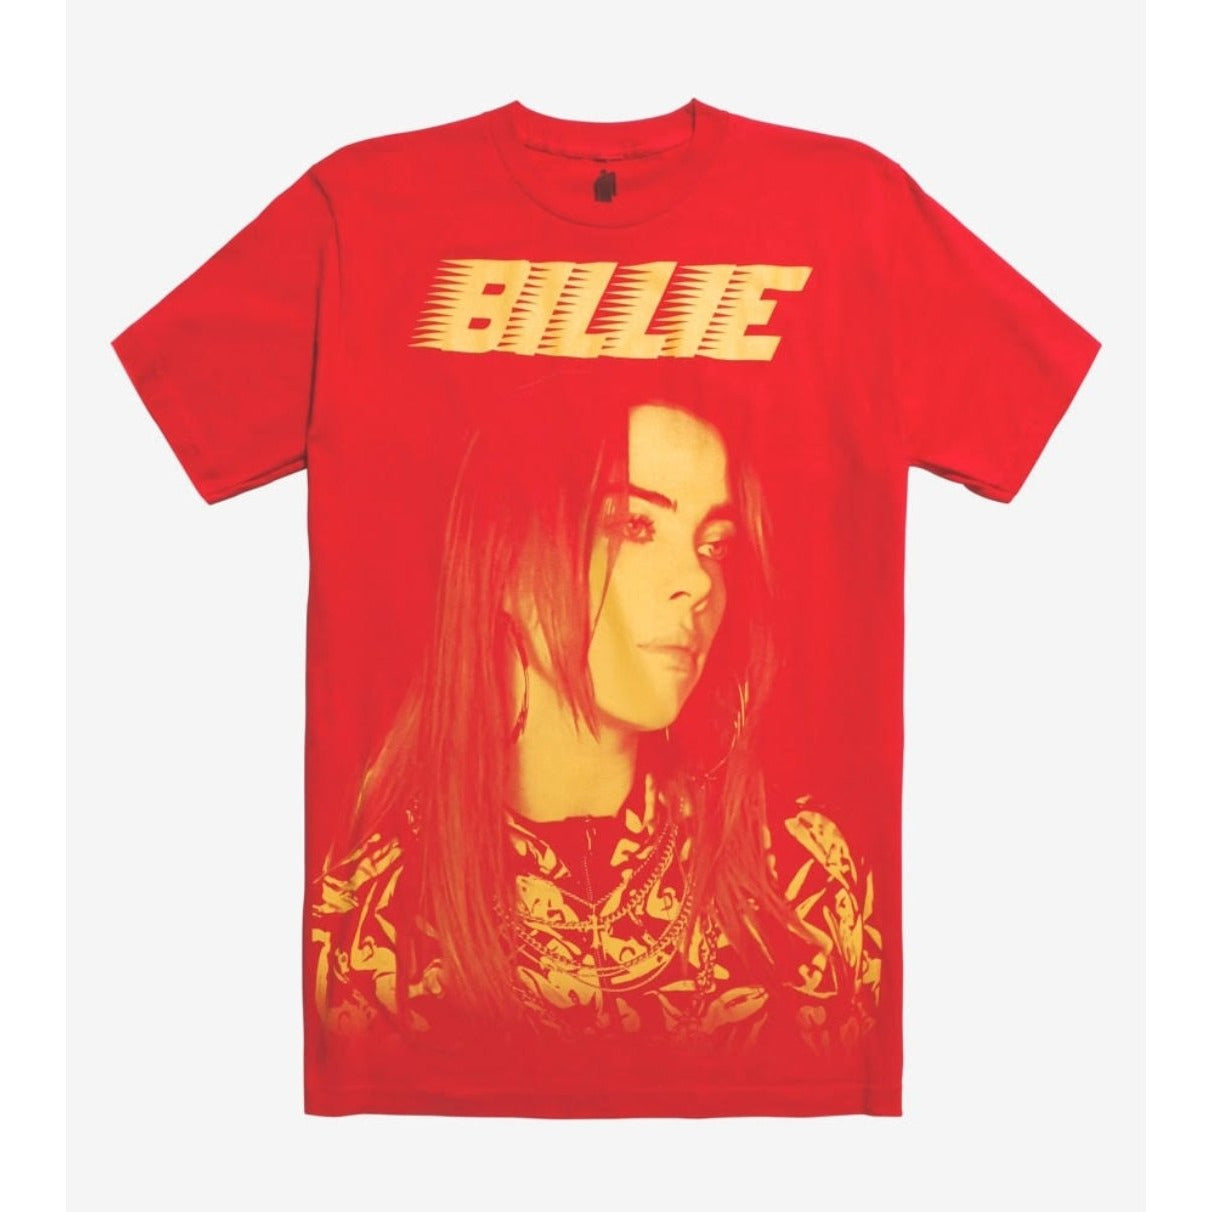 Billie Eilish - Red Portrait T-Shirt